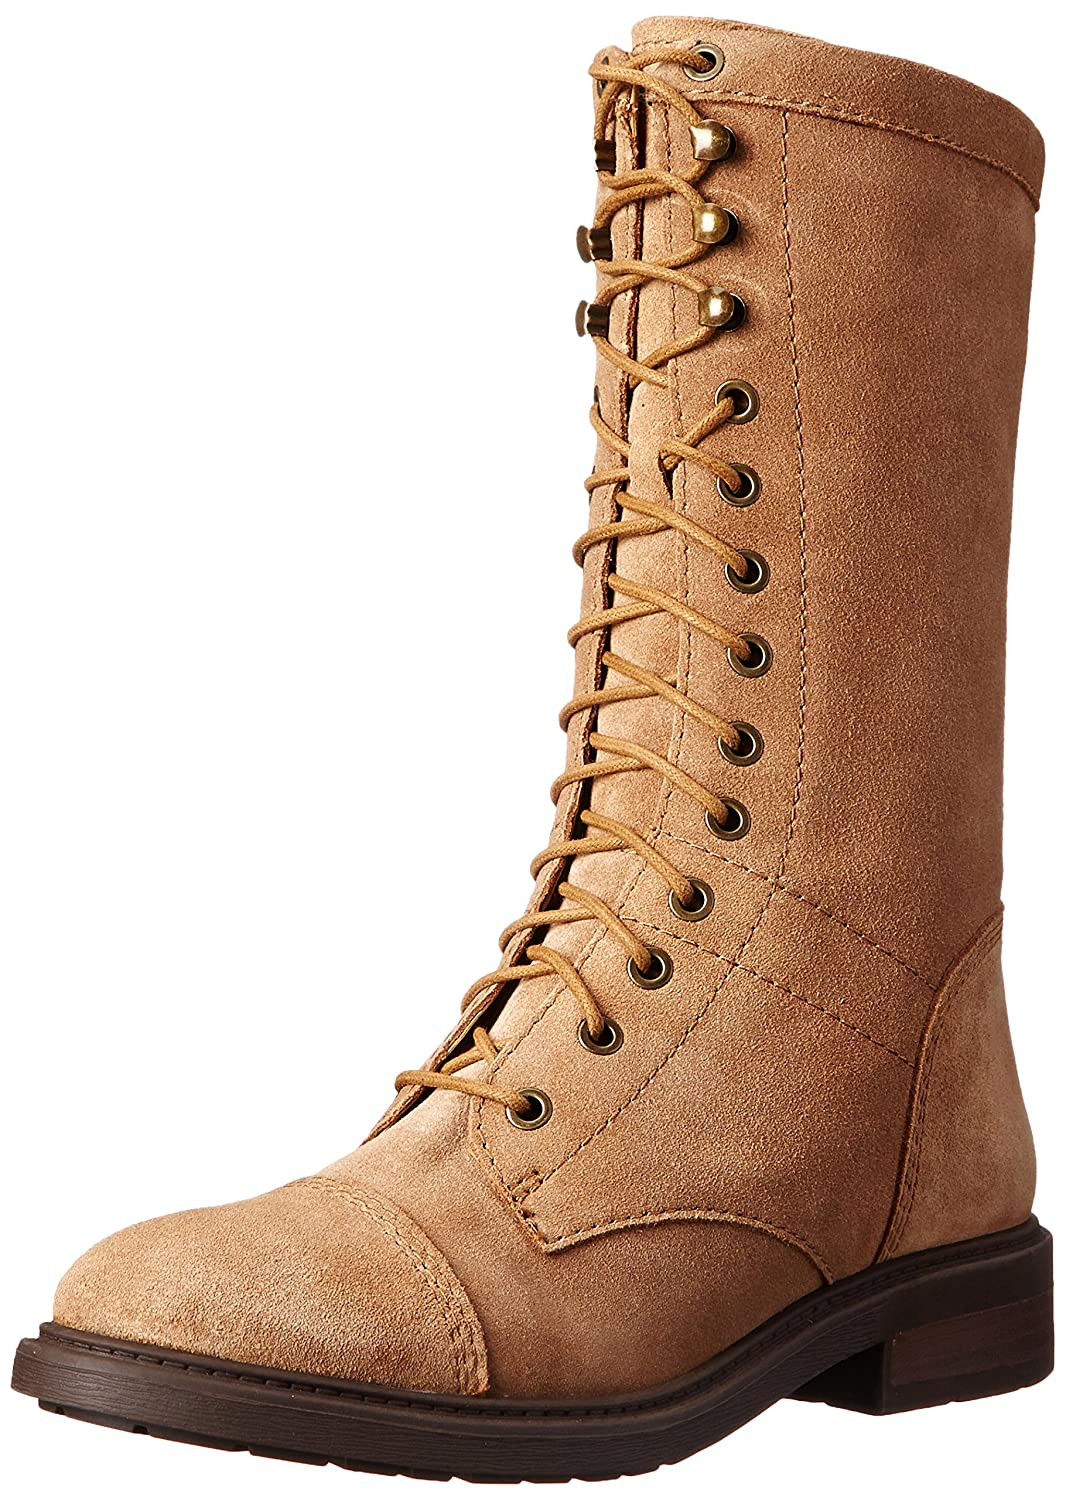 Nine West Women's Gunner Suede Lace-up Ankle Boot Dark Natural